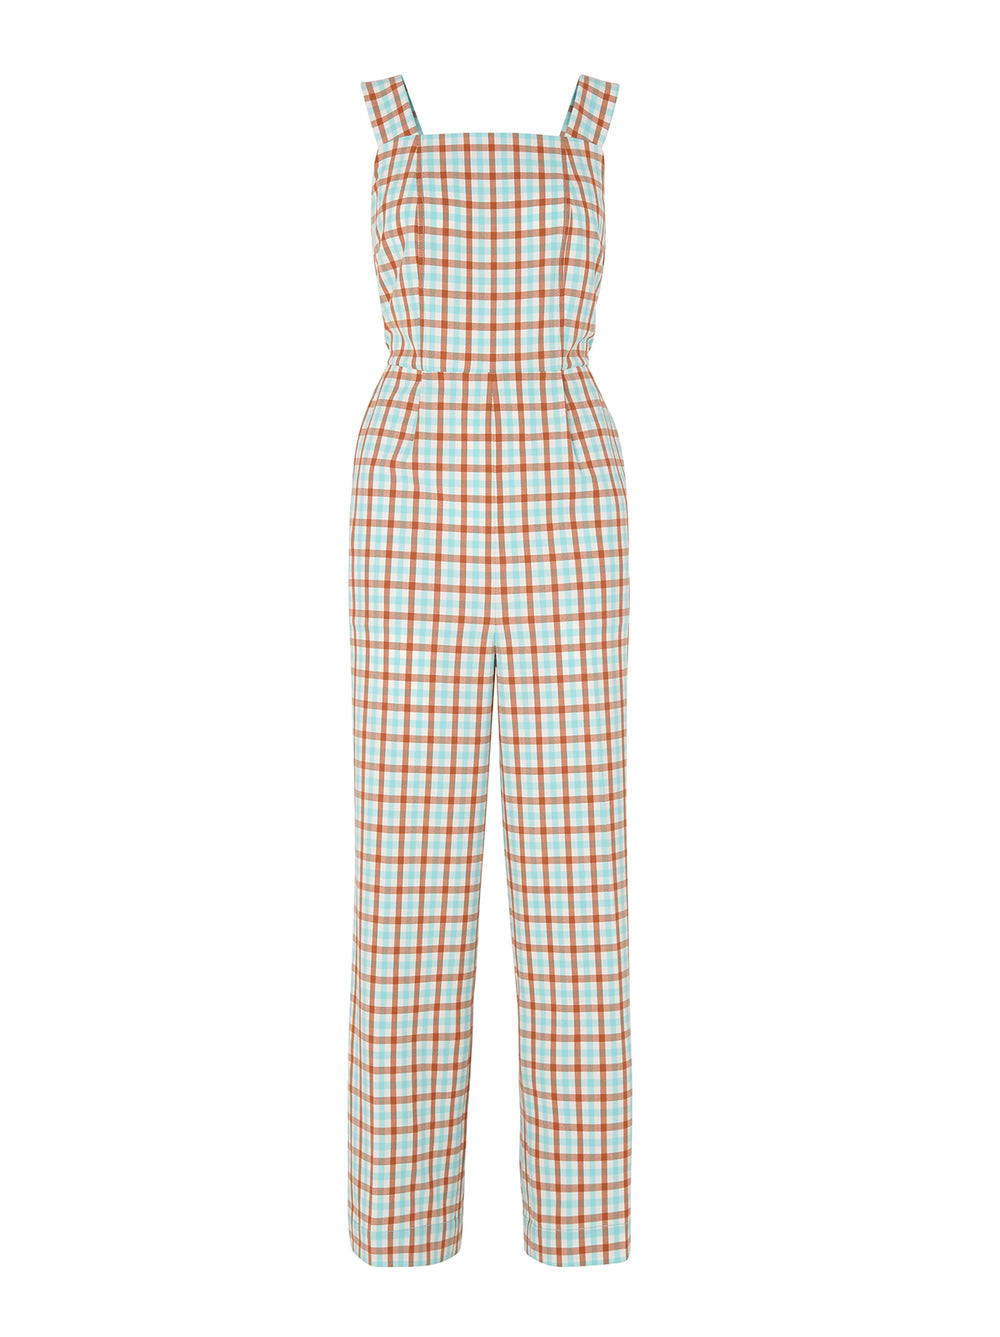 Tamar Tailored Check Jumpsuit by KITRI Studio